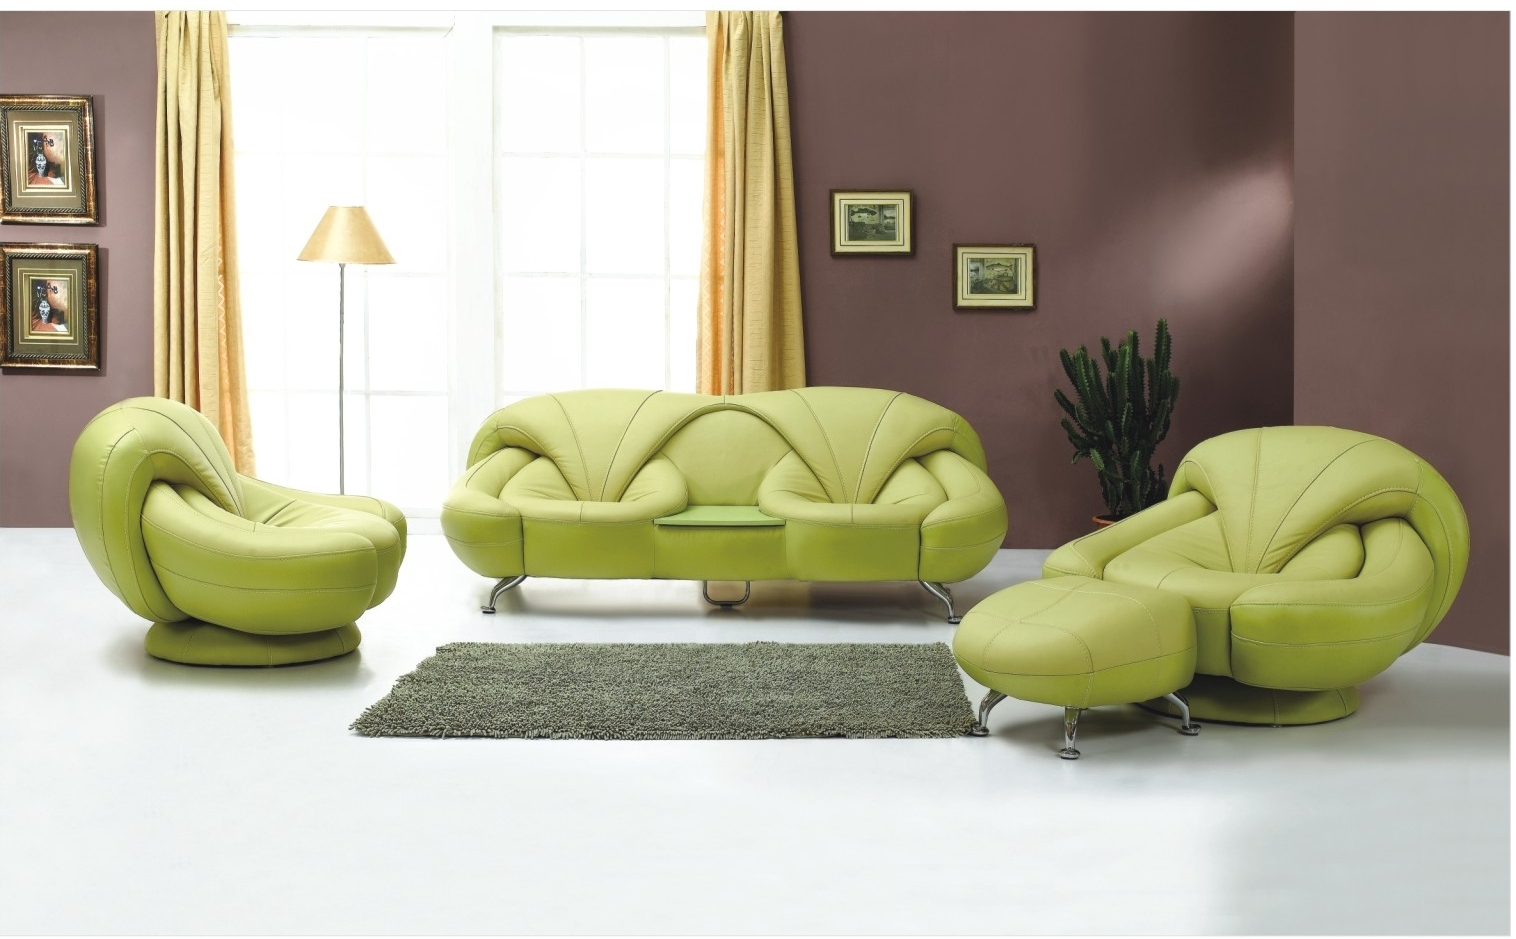 Stylish-living-room-green-leather-furniture.jpg